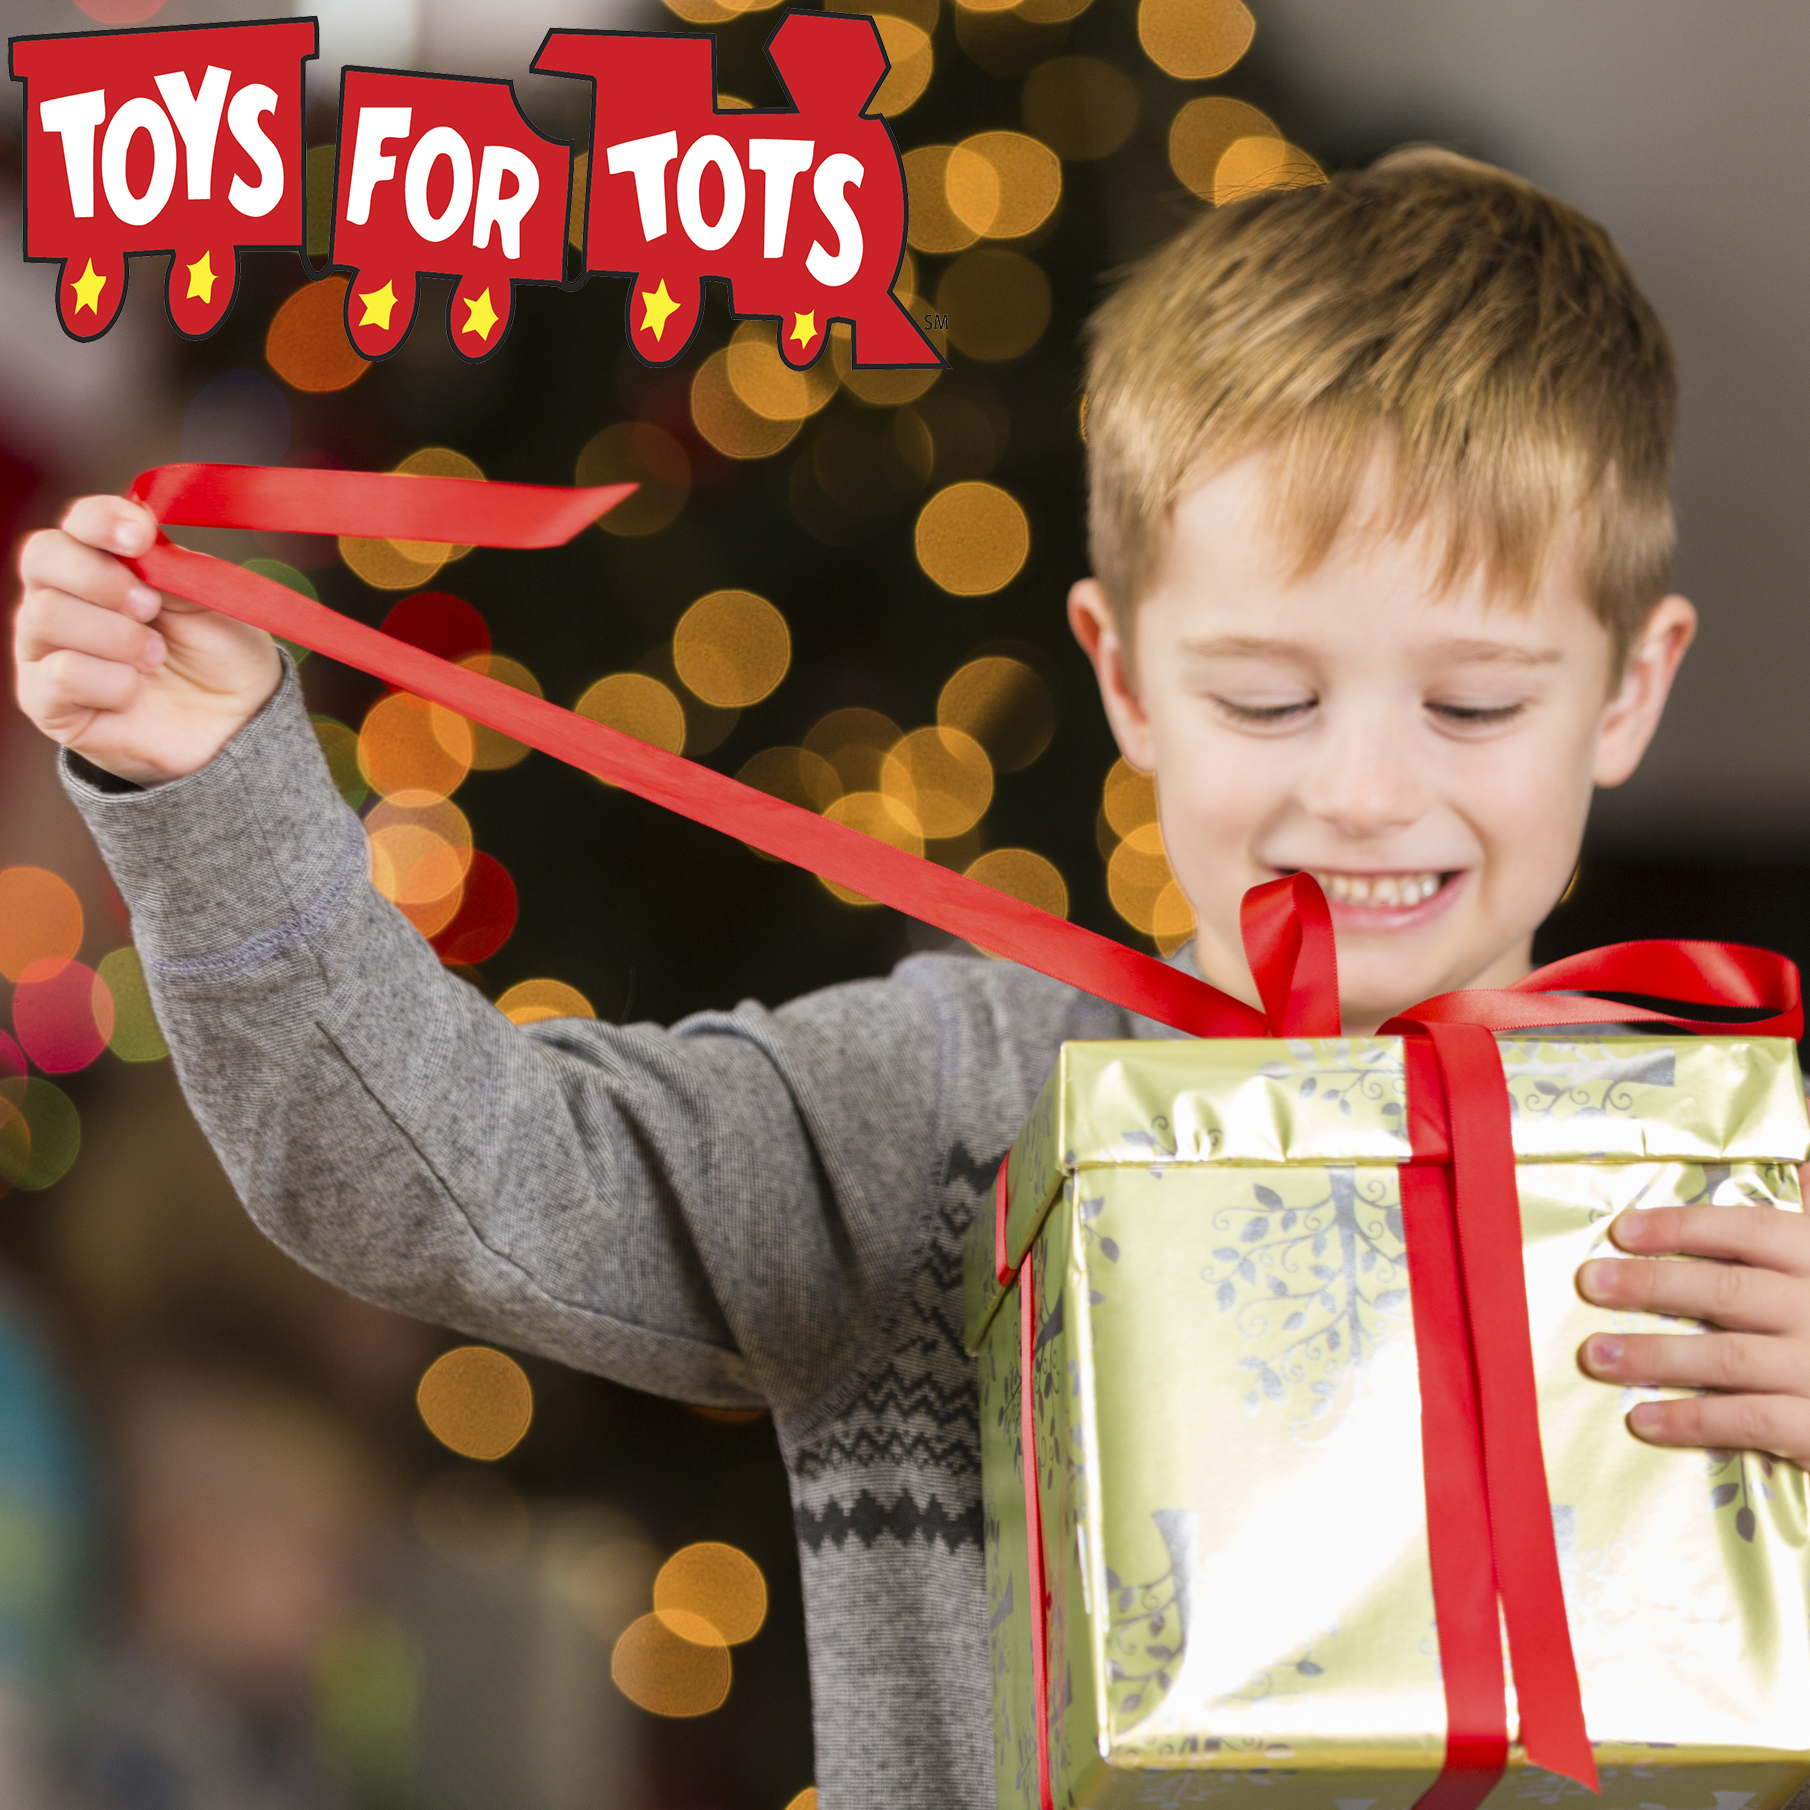 Toys For Tots Charity Event : The carballo agency of north jersey launches charity drive